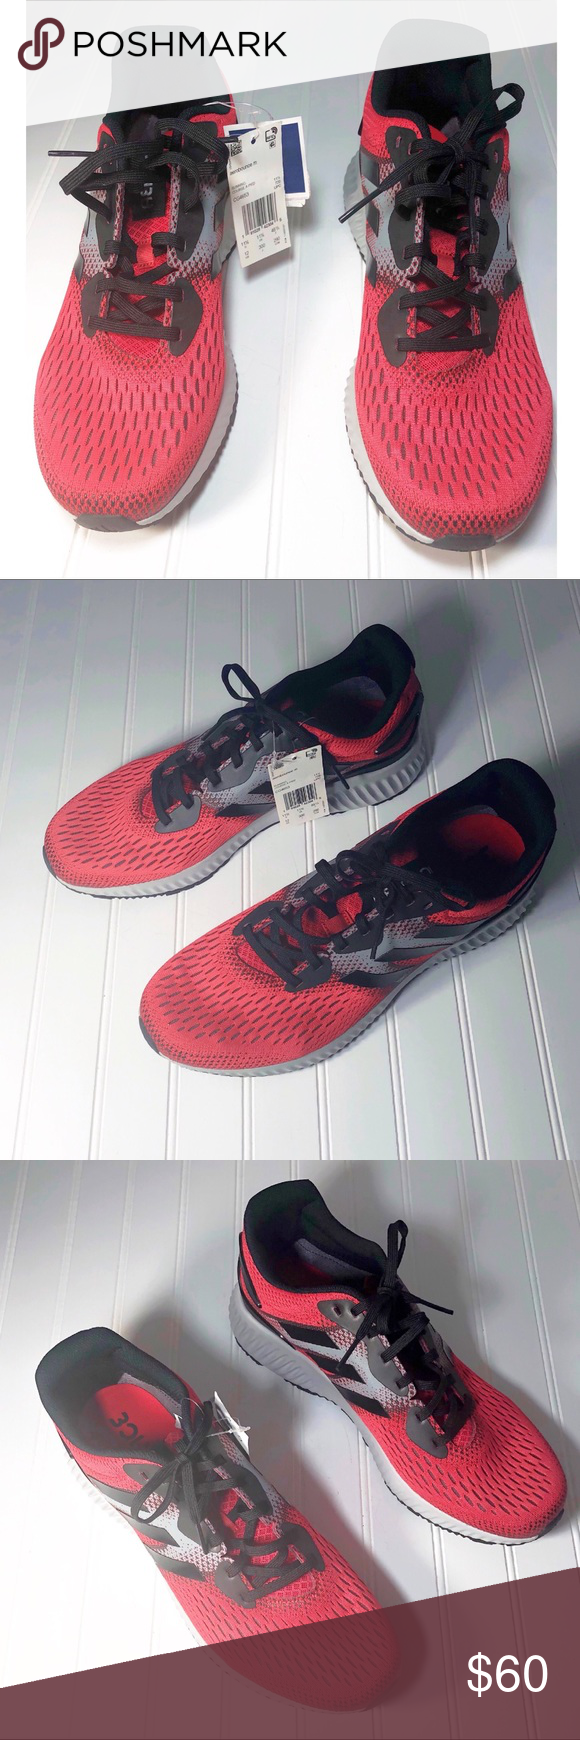 buy online 2838b 31c0f Adidas Aero bounce CG4653 Running Shoes Size 12 New without box Color   Red Black Gray Style ID  CG4653 Brand  Adidas Size  Men s US 12 Running  Shoes adidas ...